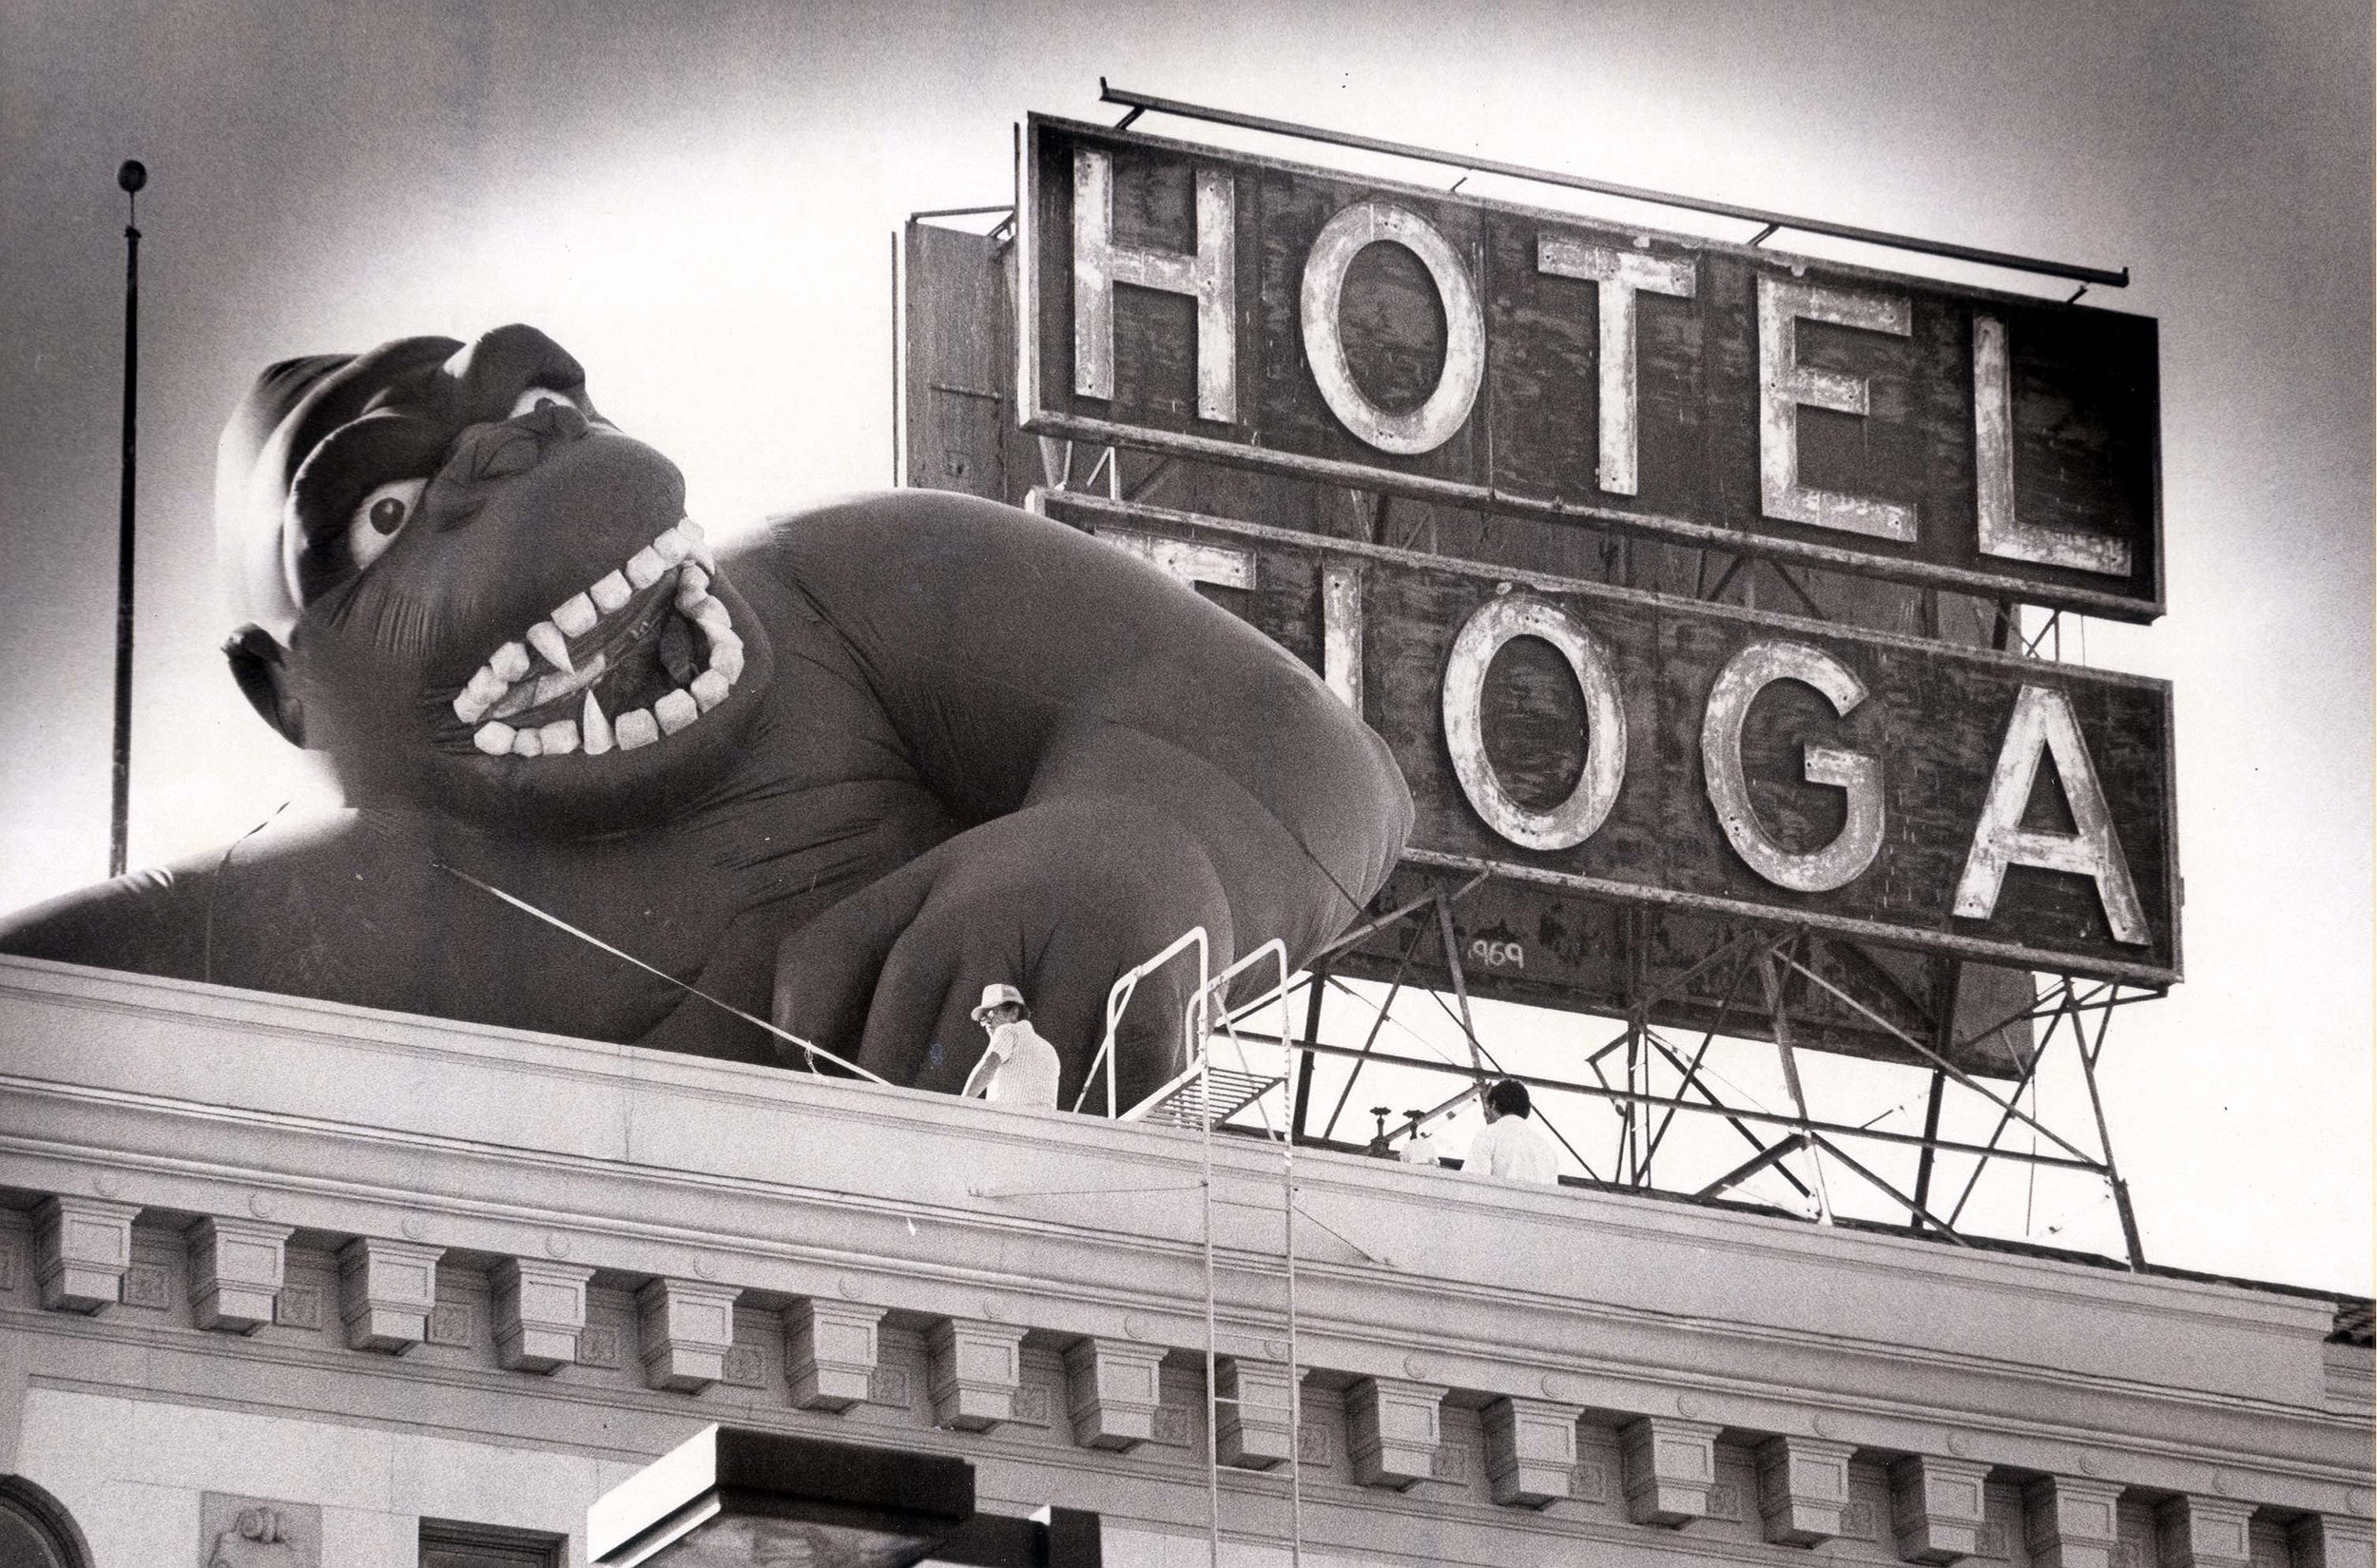 2006-44-65 inflatable King Kong next to Hotel Tioga sign, 1986.JPG